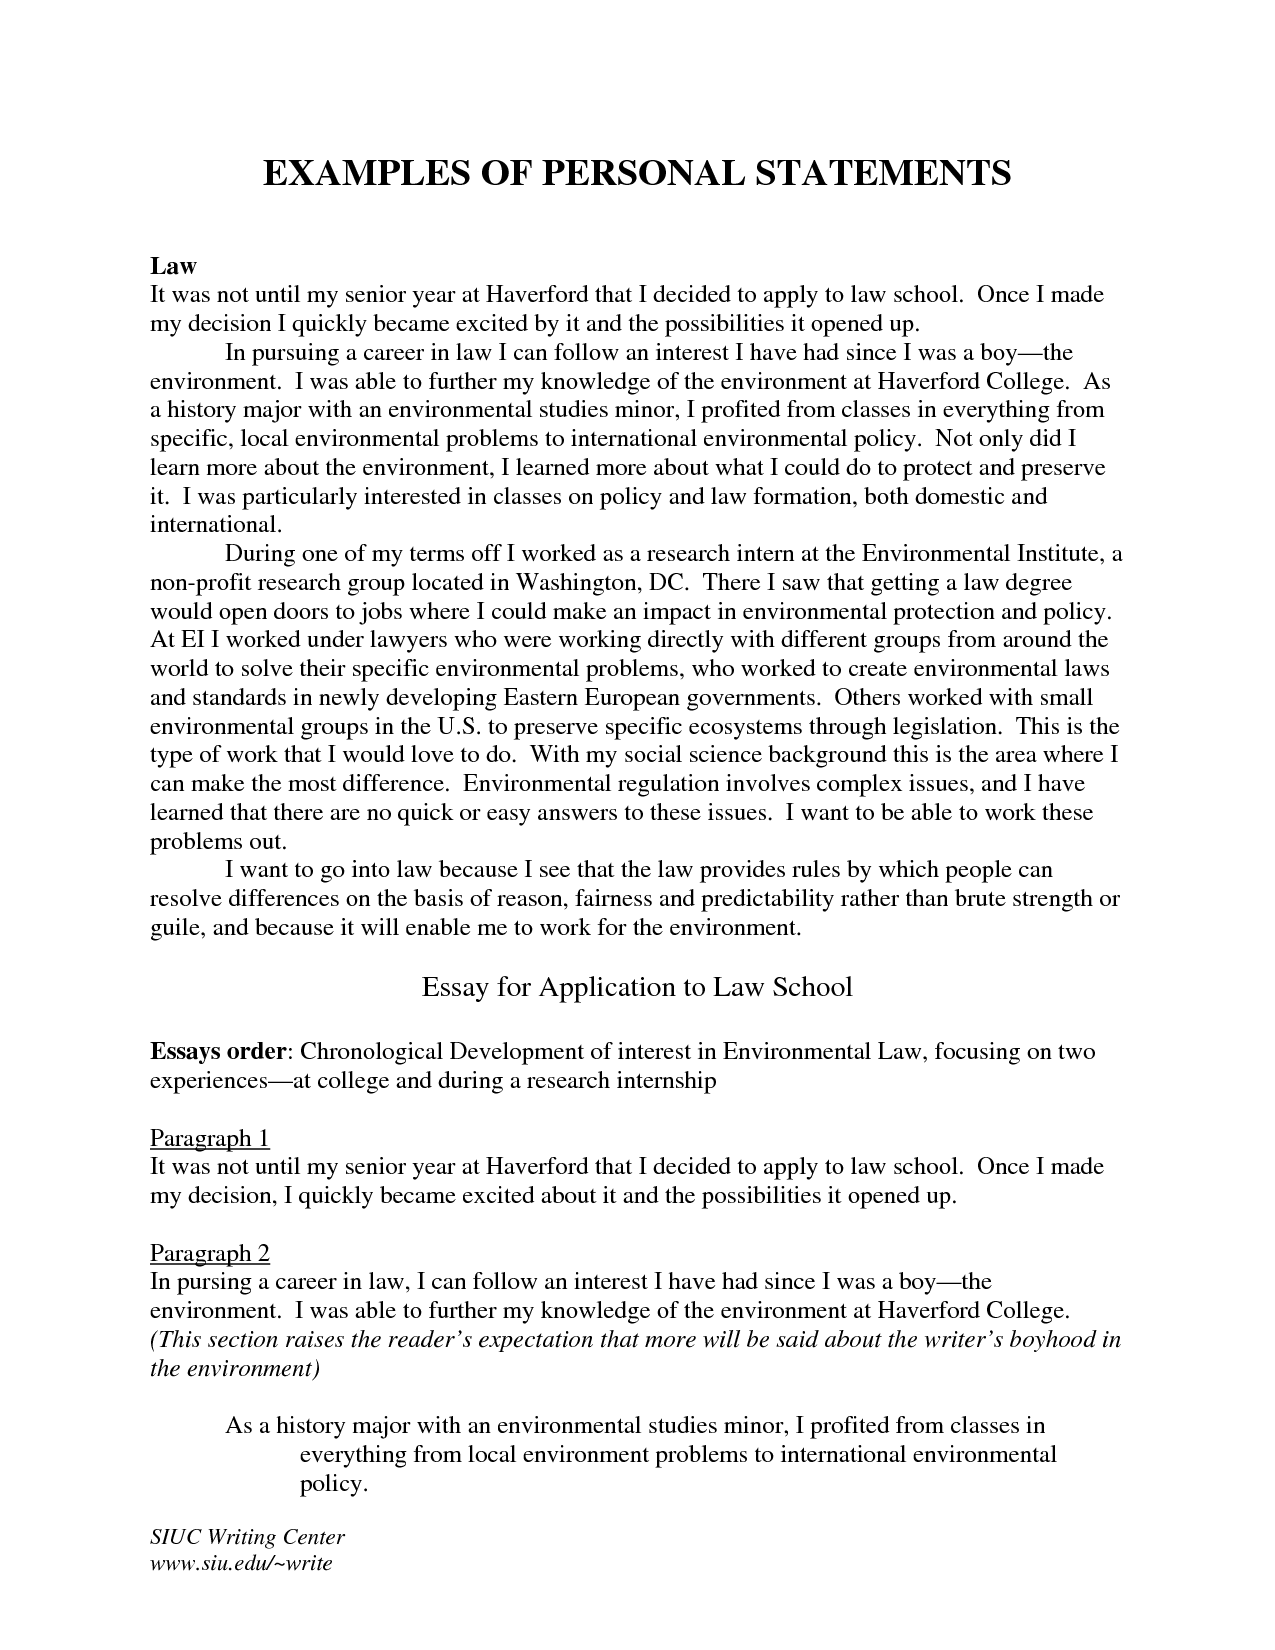 grad school essays samples offers tips on writing a statement of purpose and provides sample - Graduate School Essay Examples